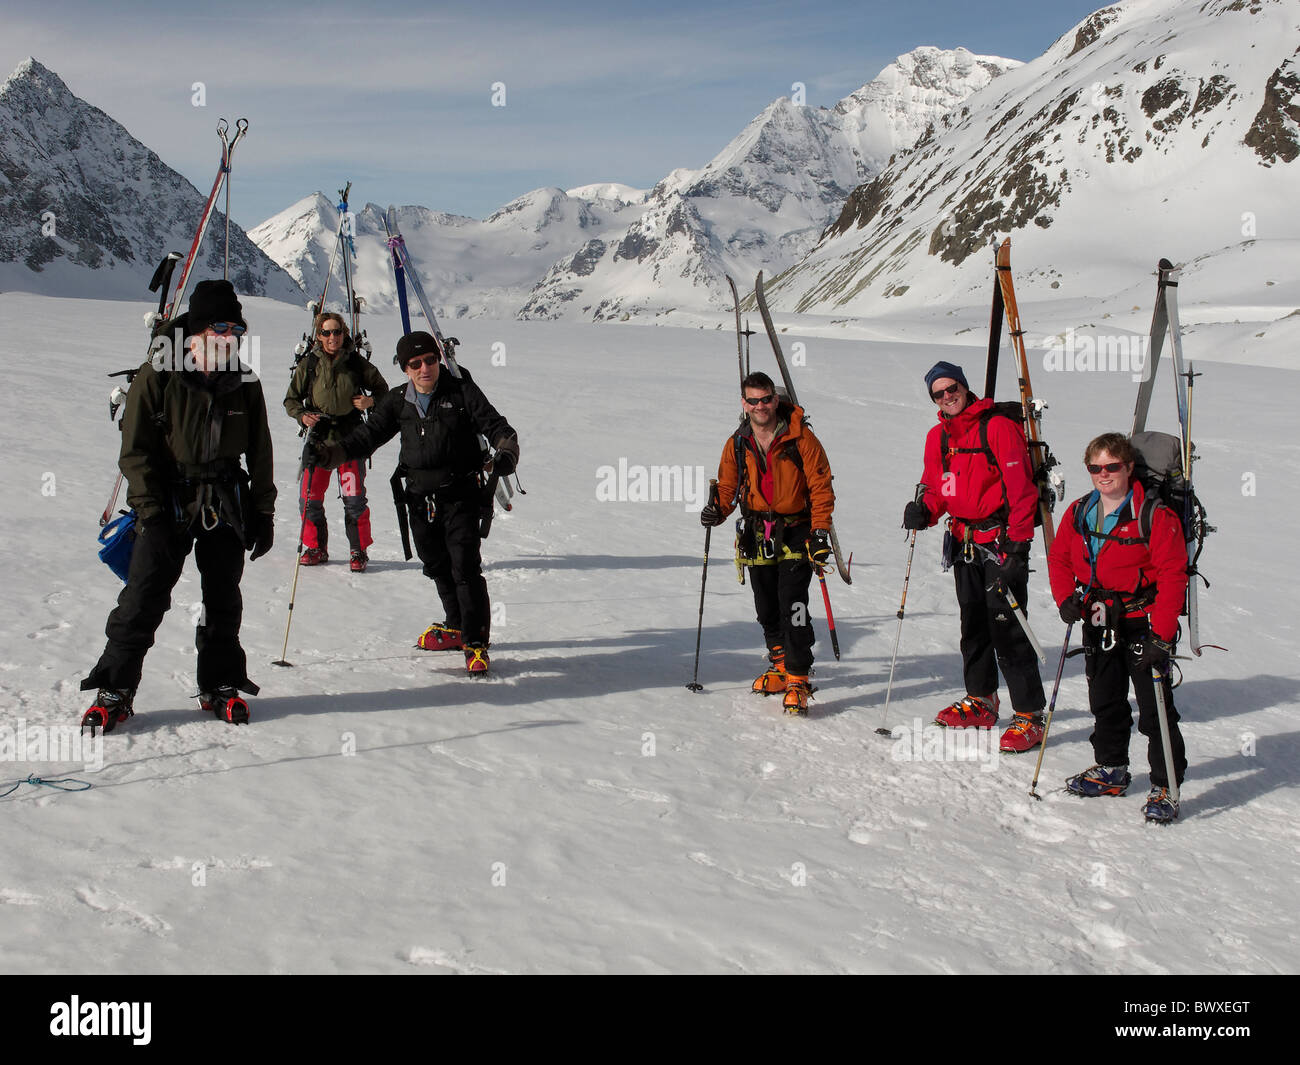 A group of ski tourers, ready to walk up the steeper section at the side of the Brenay icefall, on the Brenay Glacier, - Stock Image